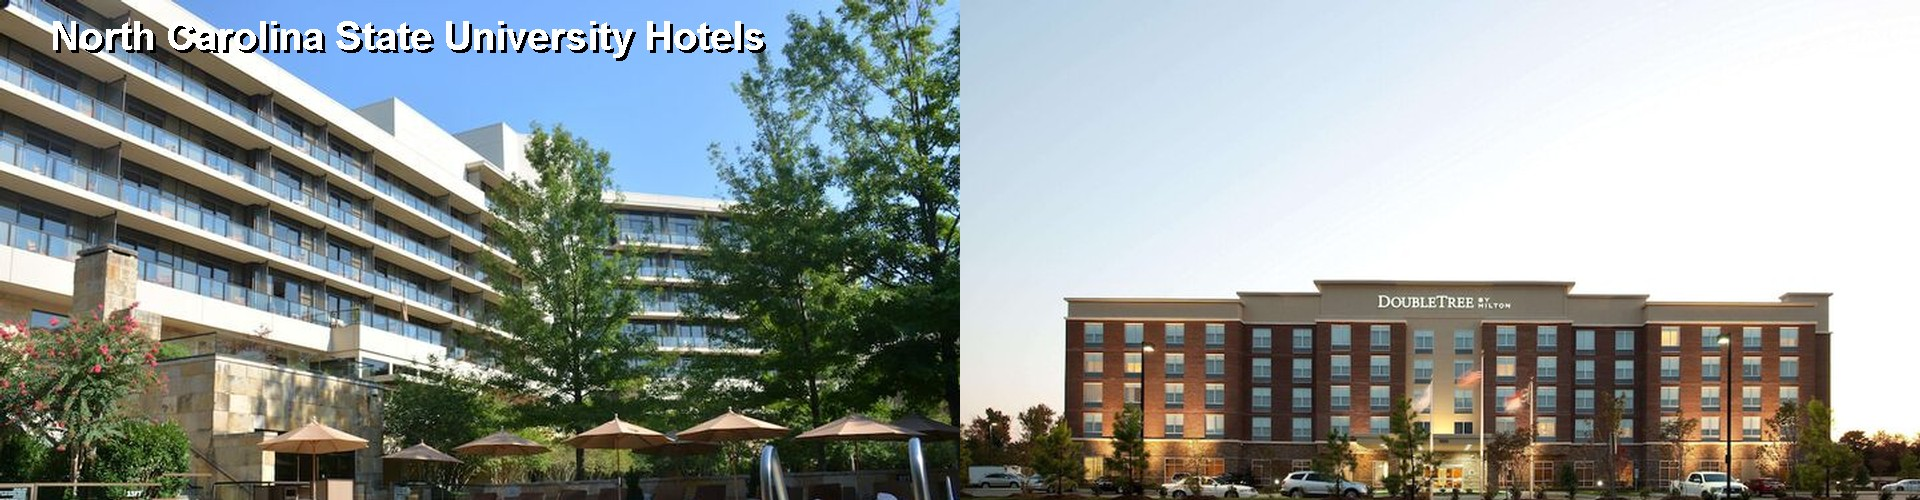 5 Best Hotels near North Carolina State University